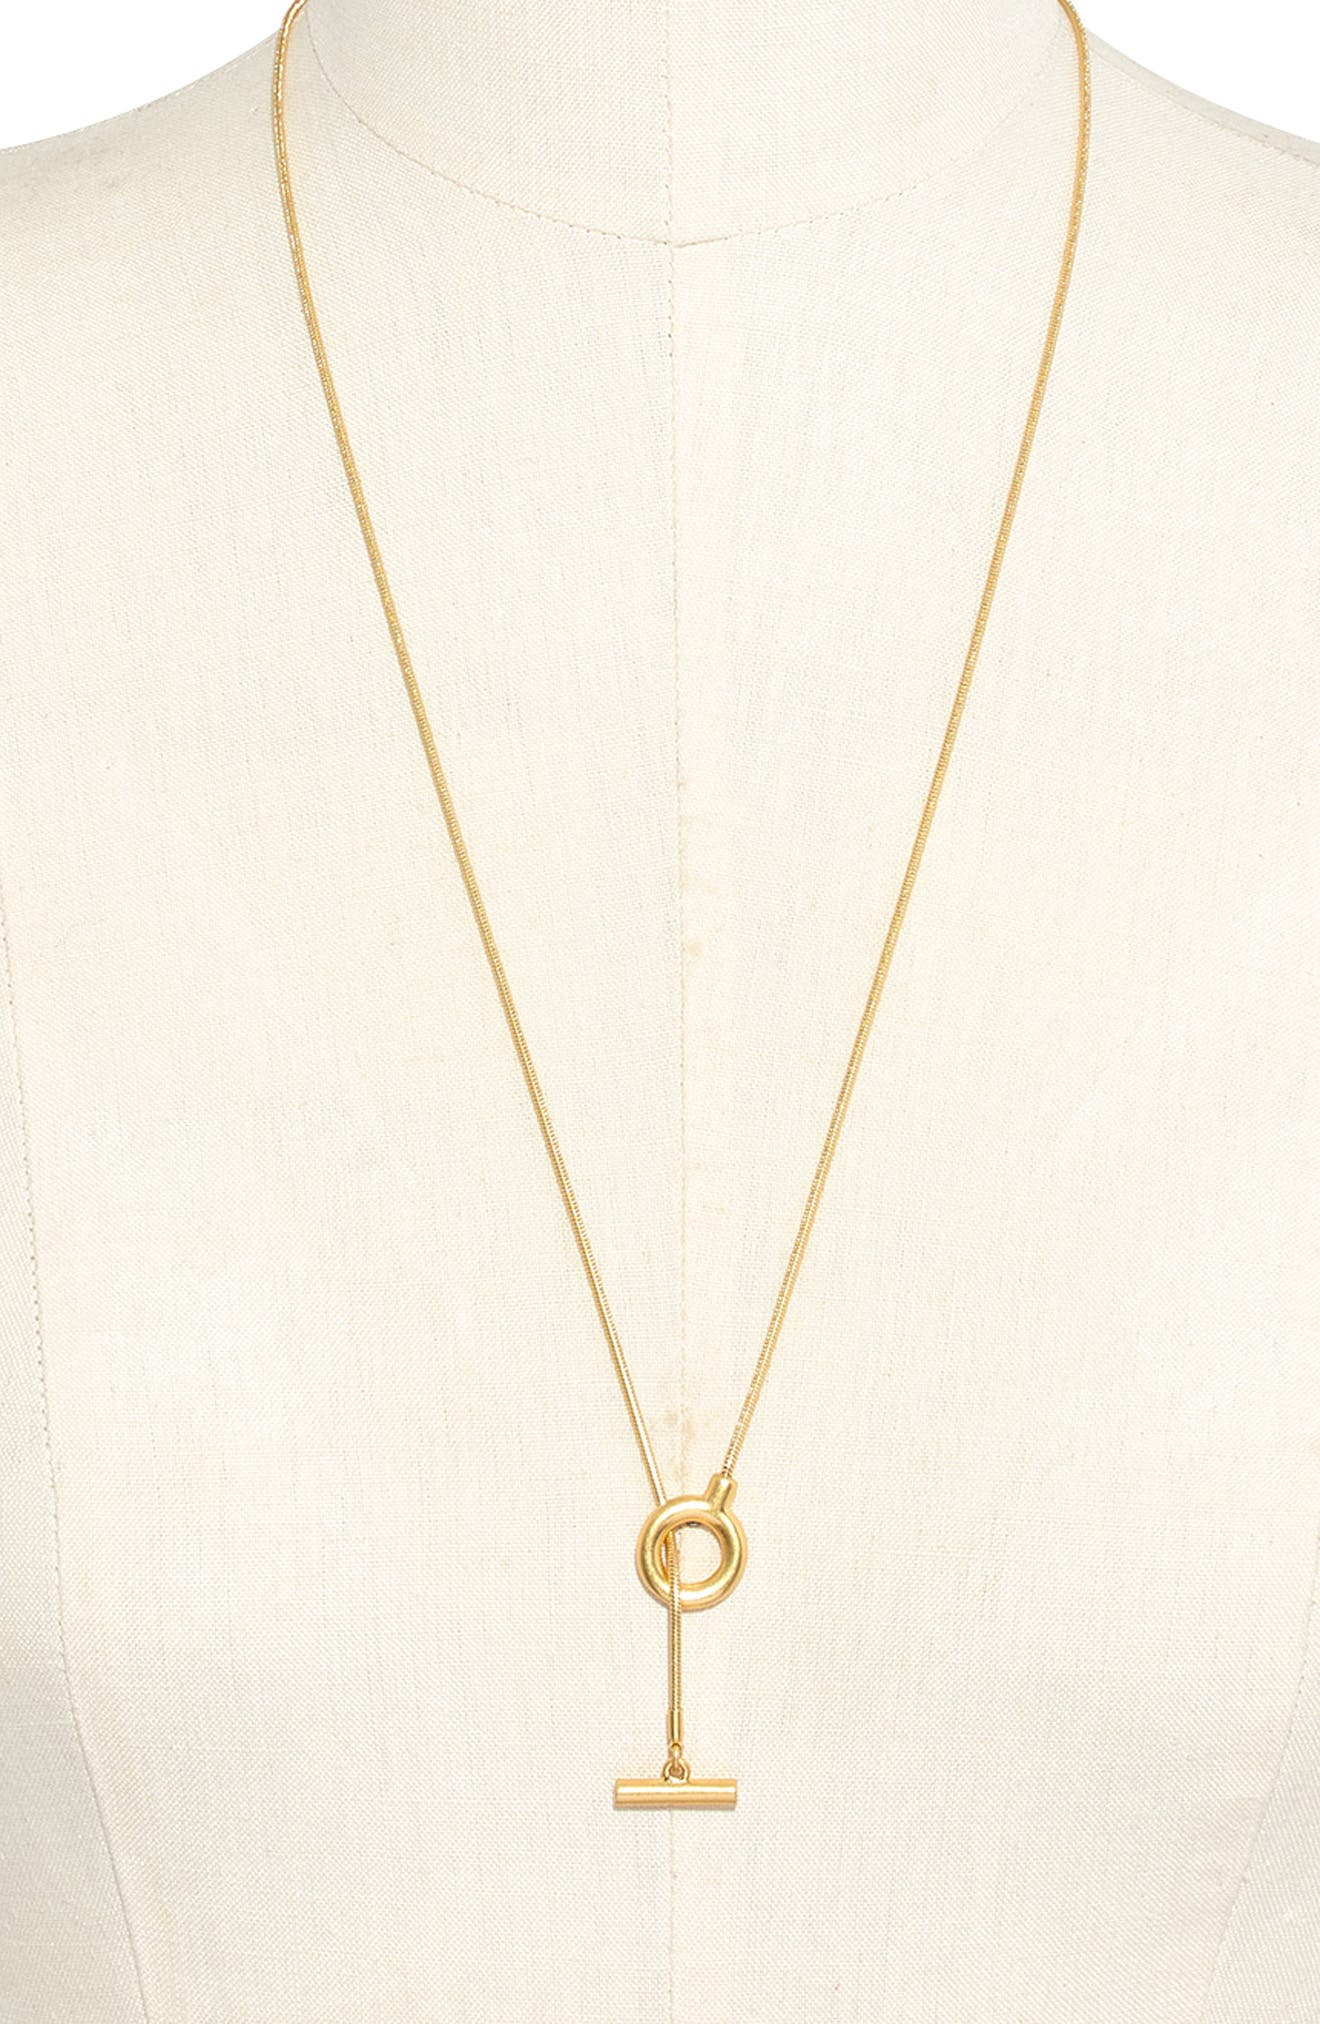 MADEWELL Toggle Lariat Necklace, Main, color, VINTAGE GOLD